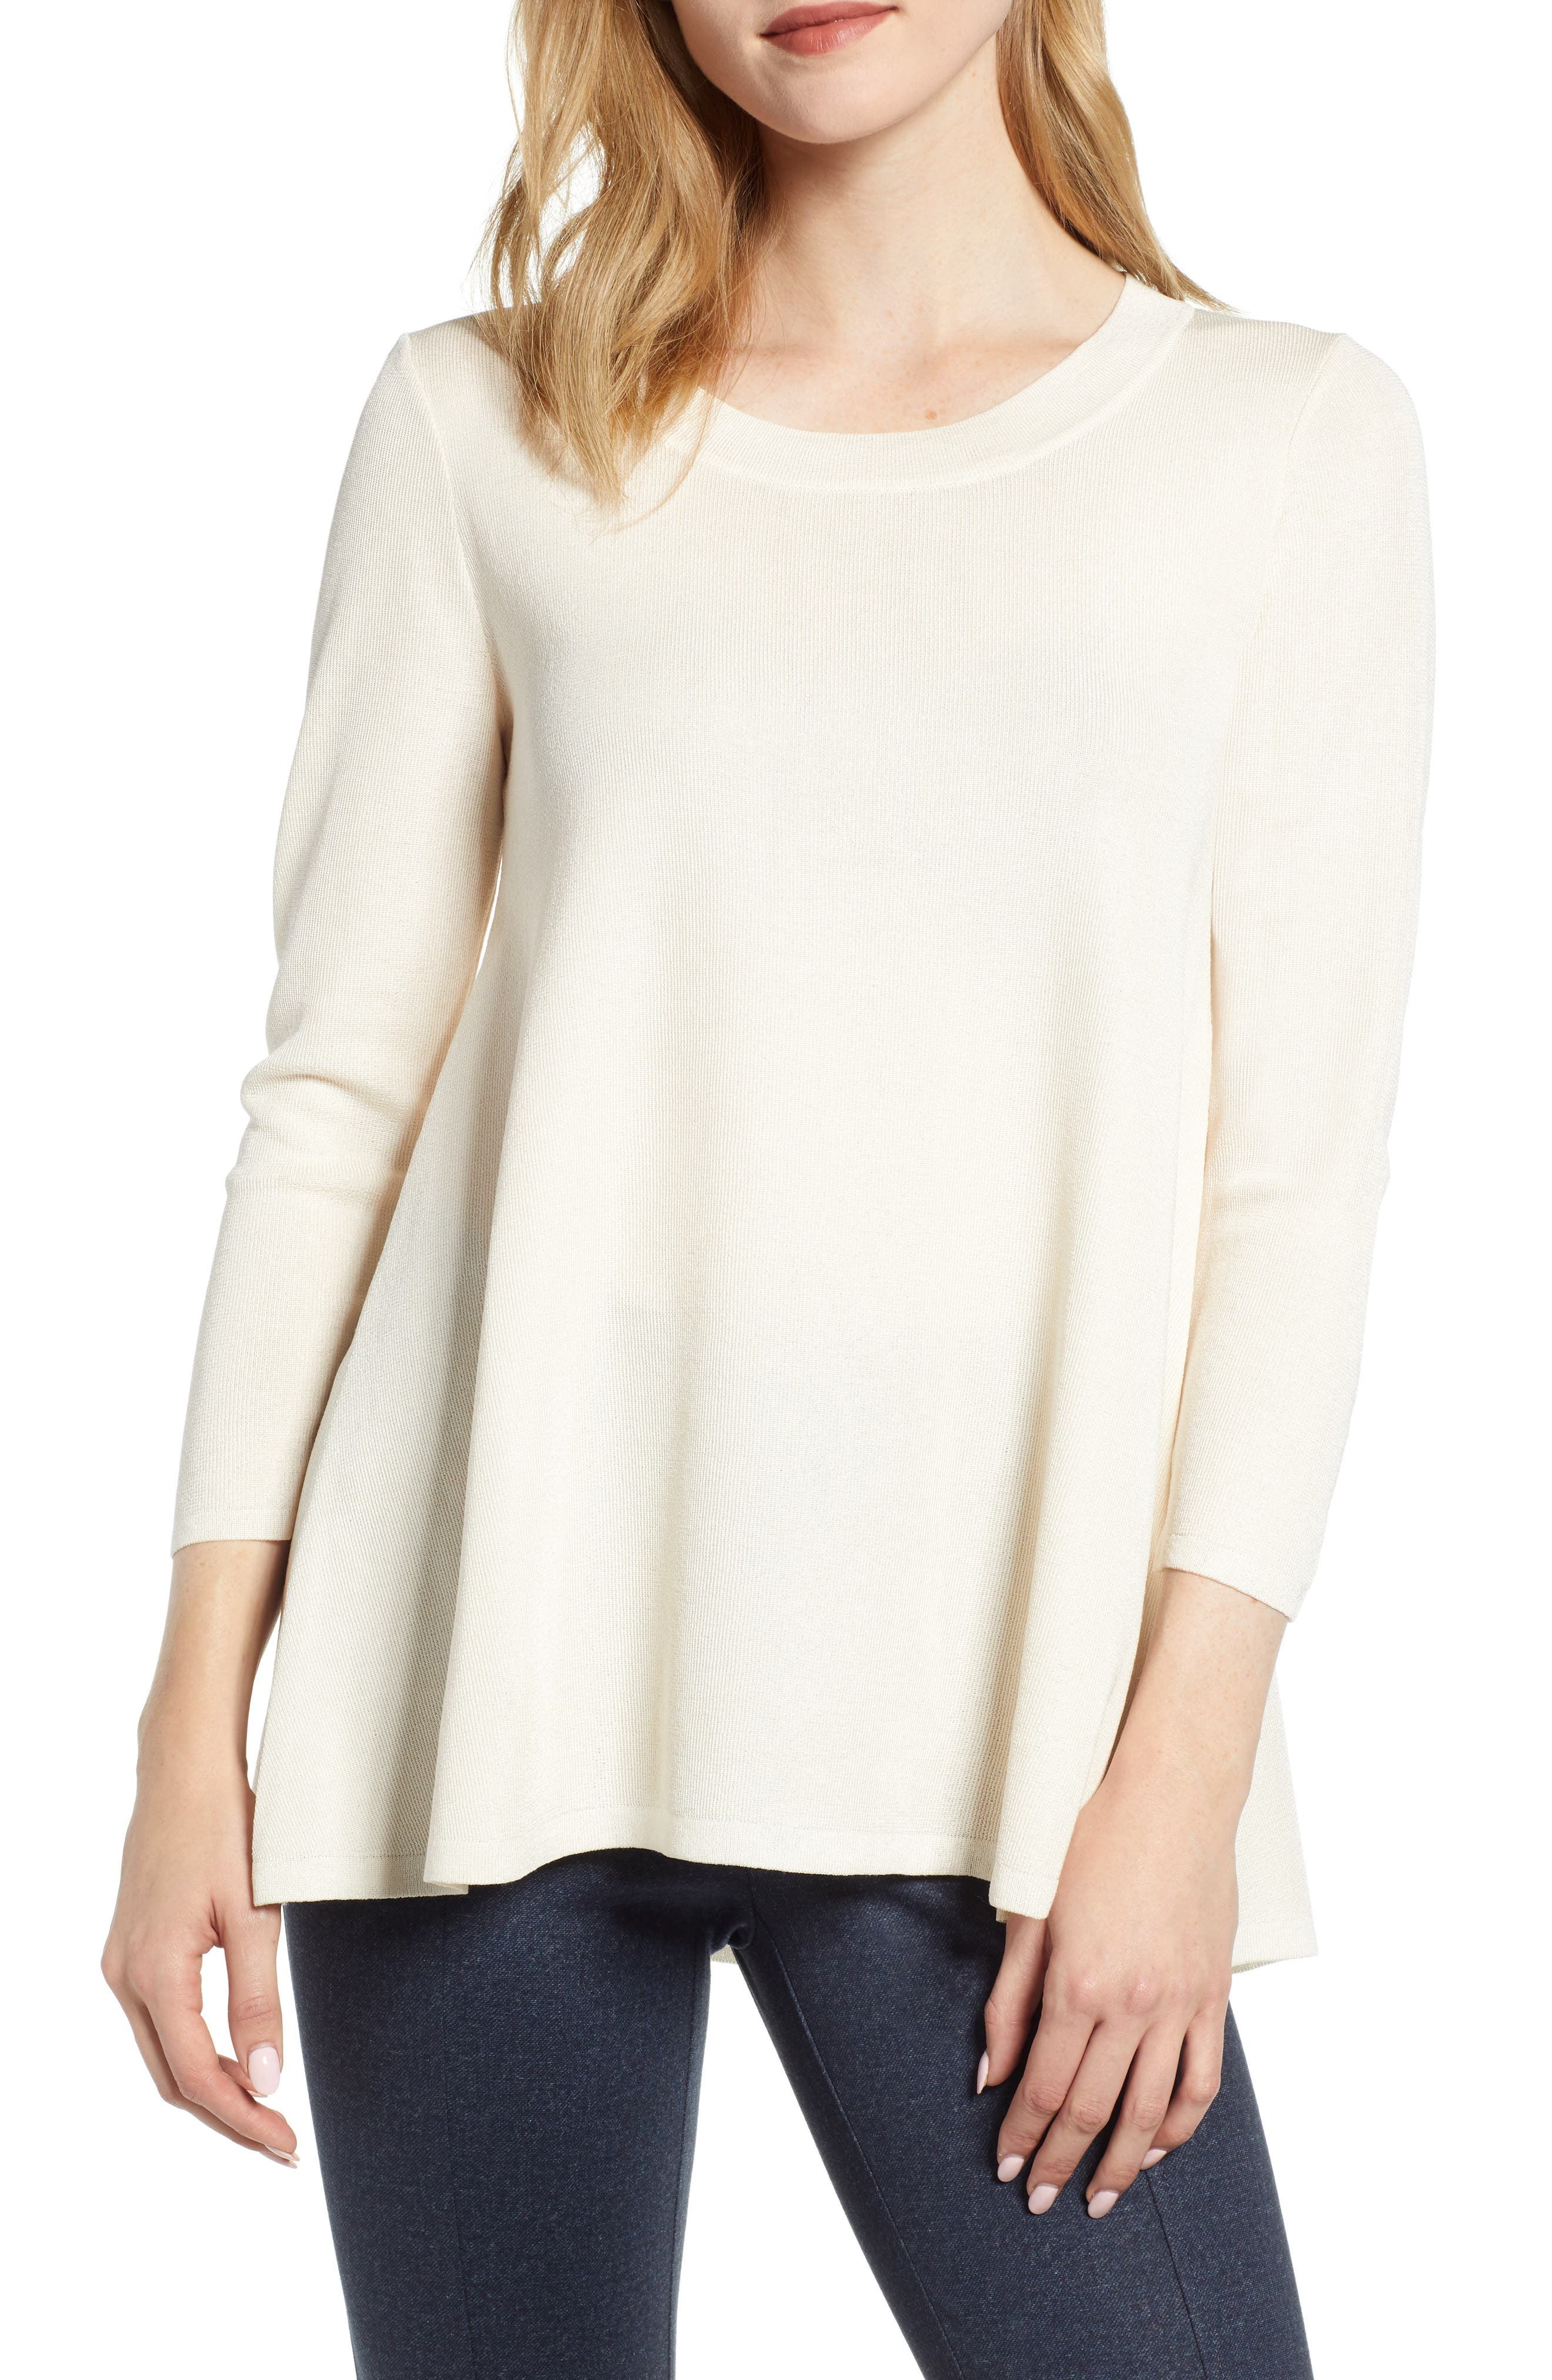 ANNE KLEIN Scoop Neck Knit Top in Anne White